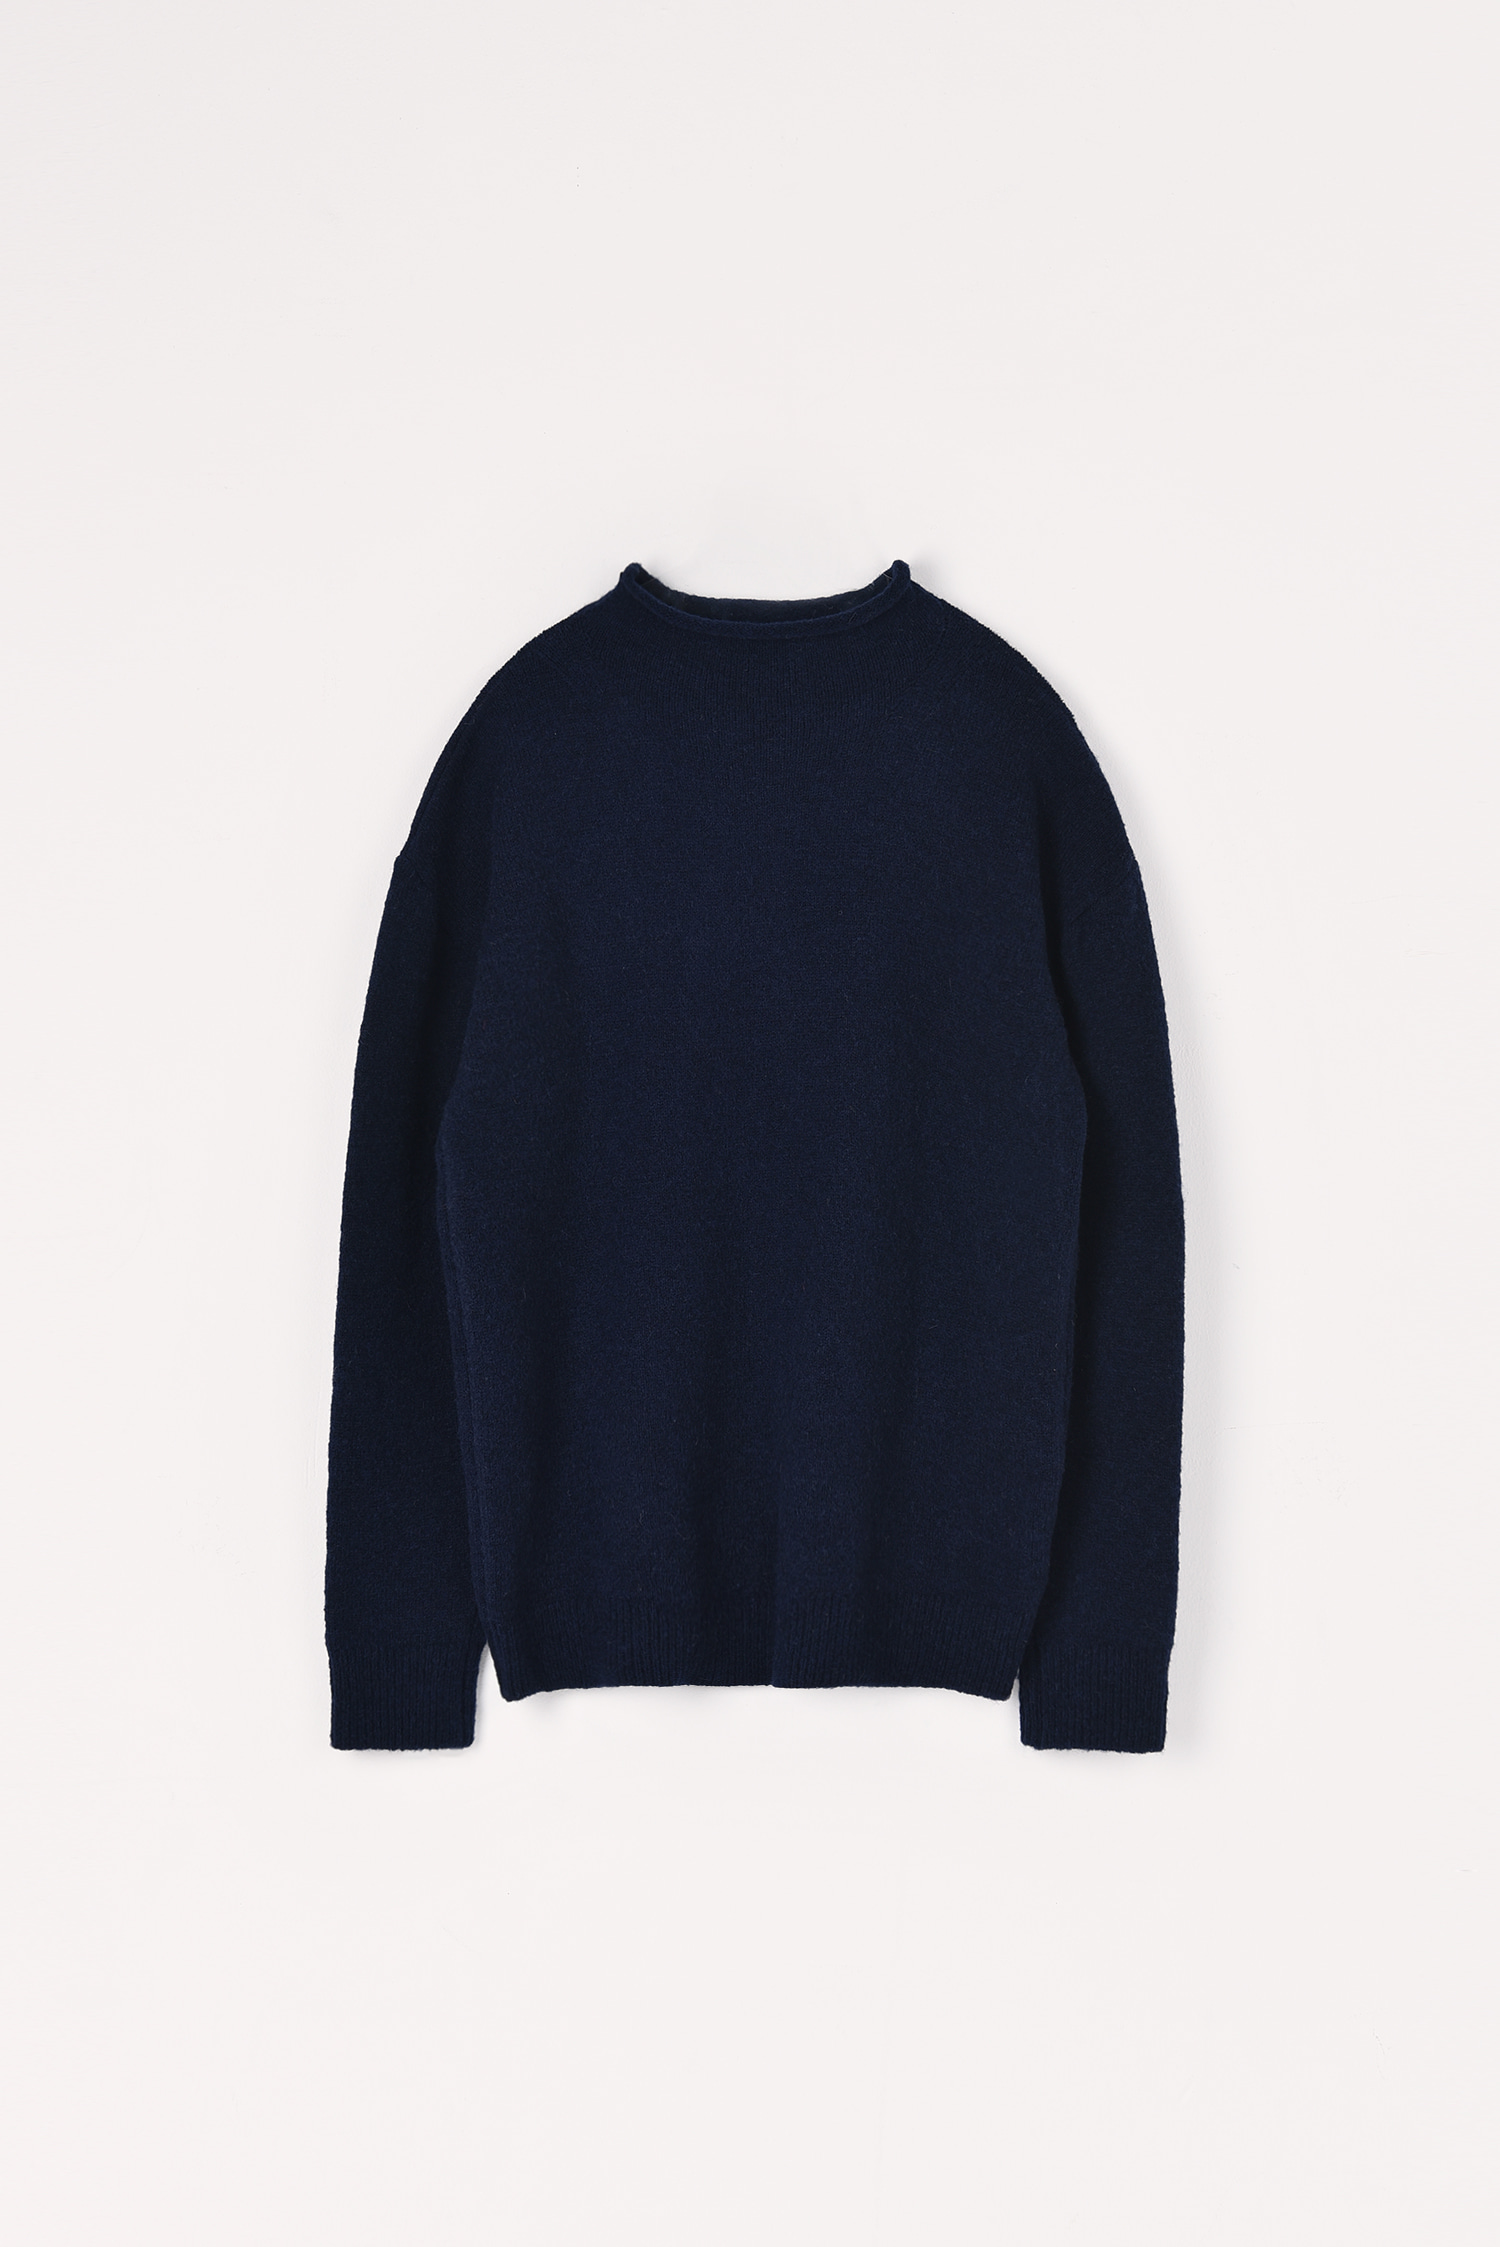 Yak simple knit (Dark navy)